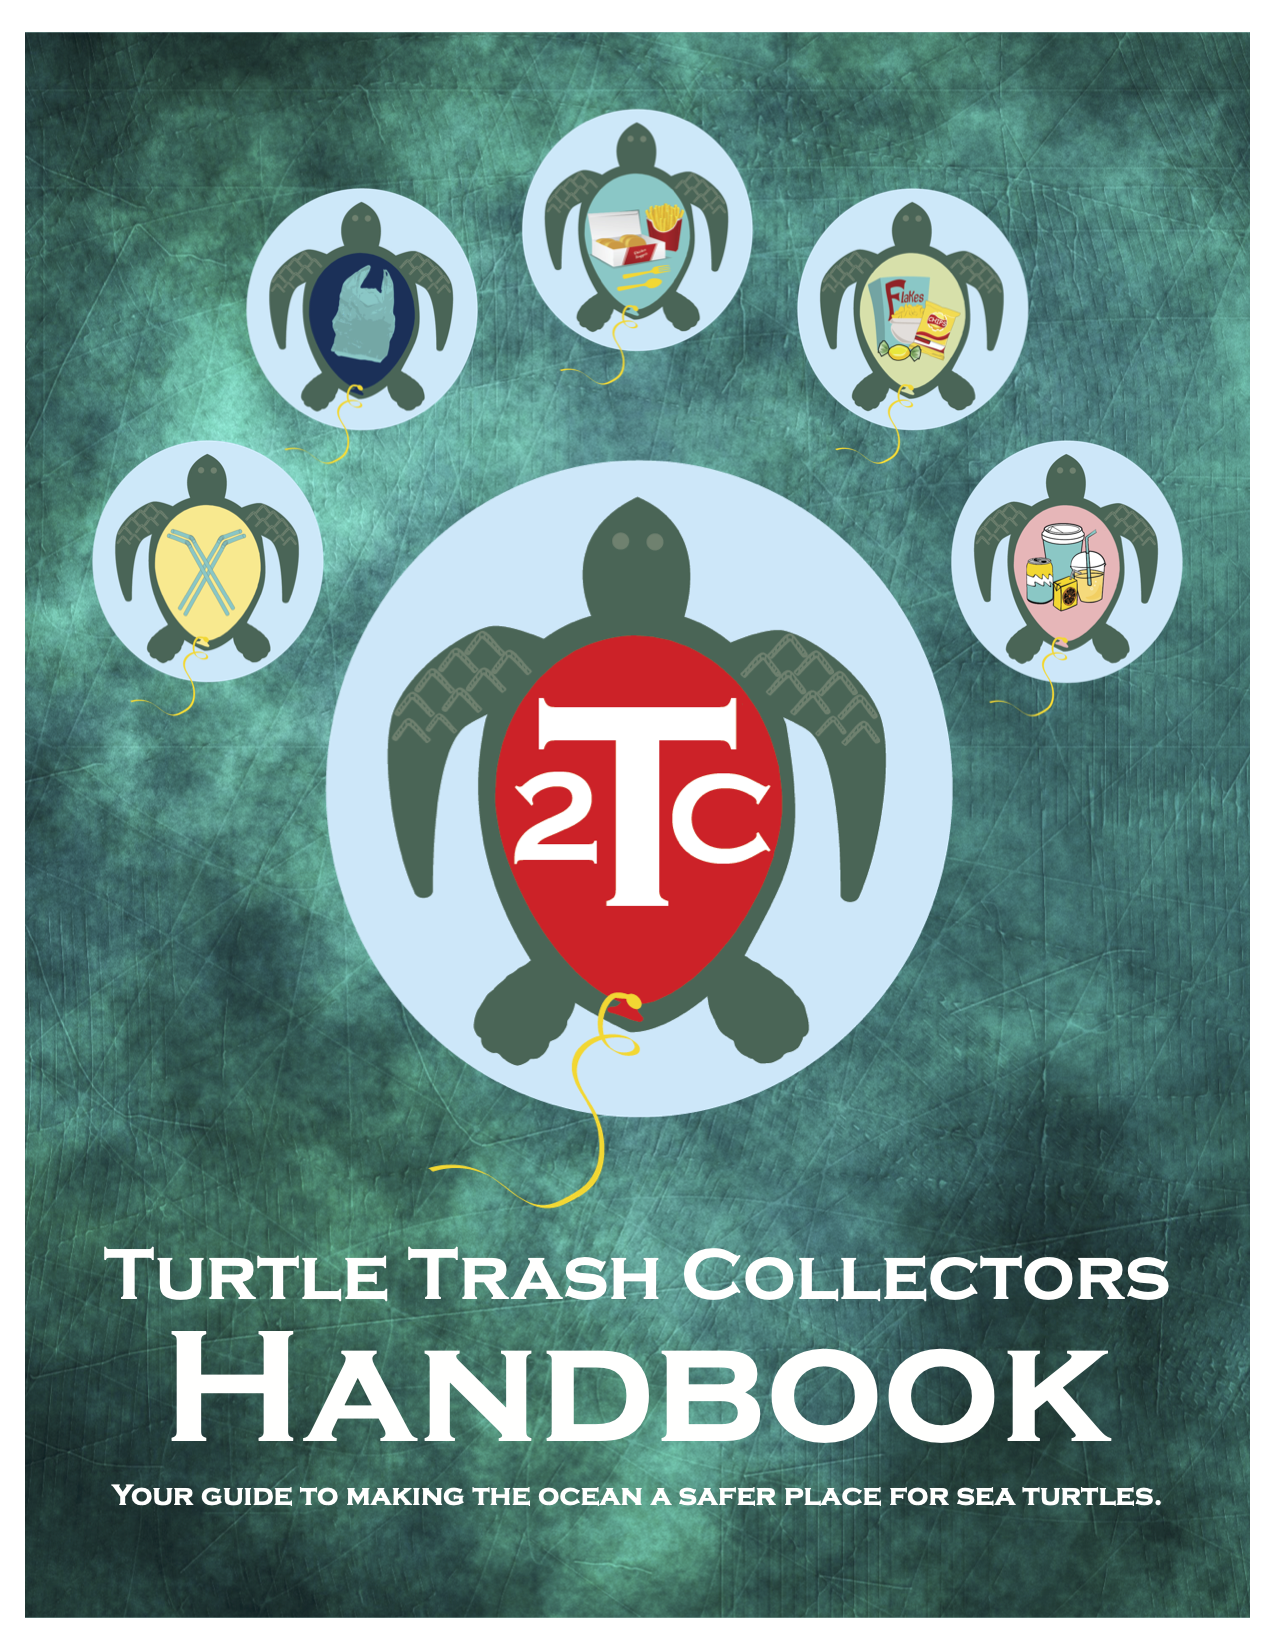 Turtle Trash Collectors handbook